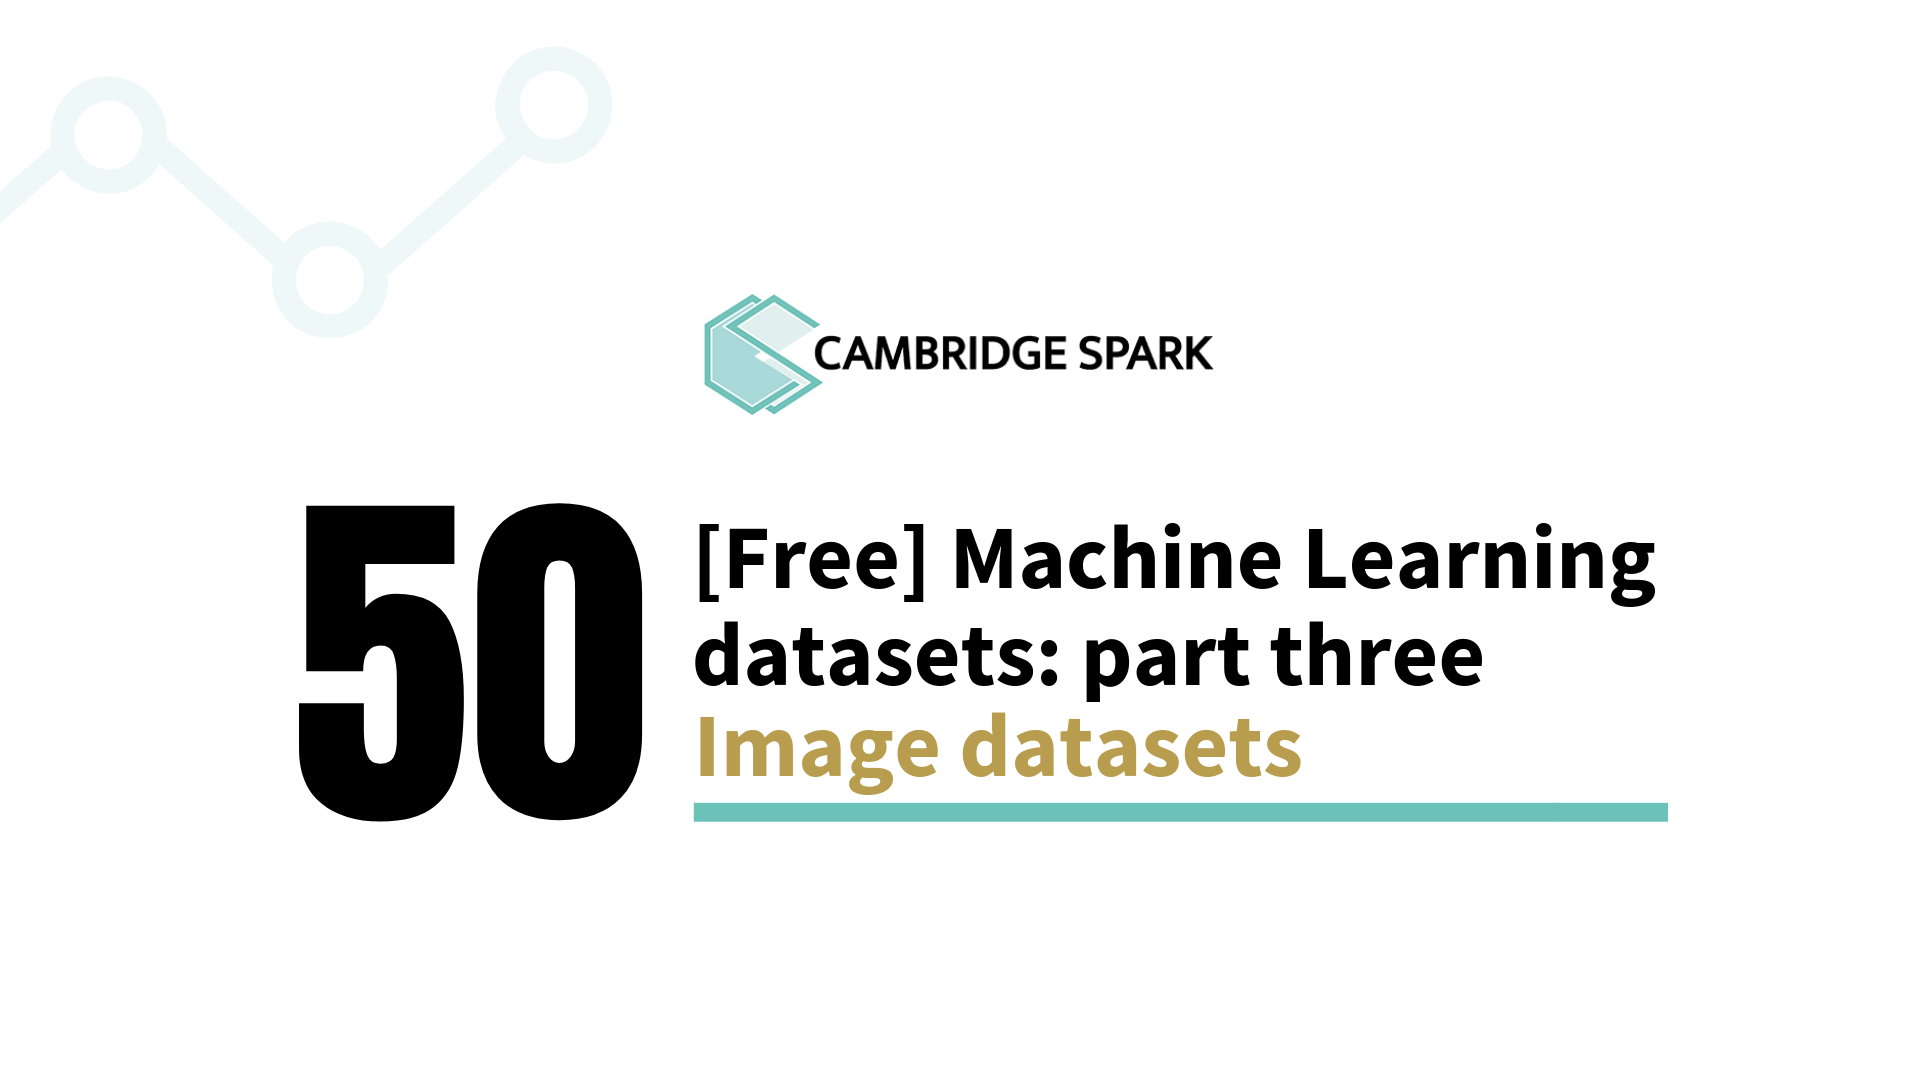 50 free Machine Learning Datasets: Image Datasets